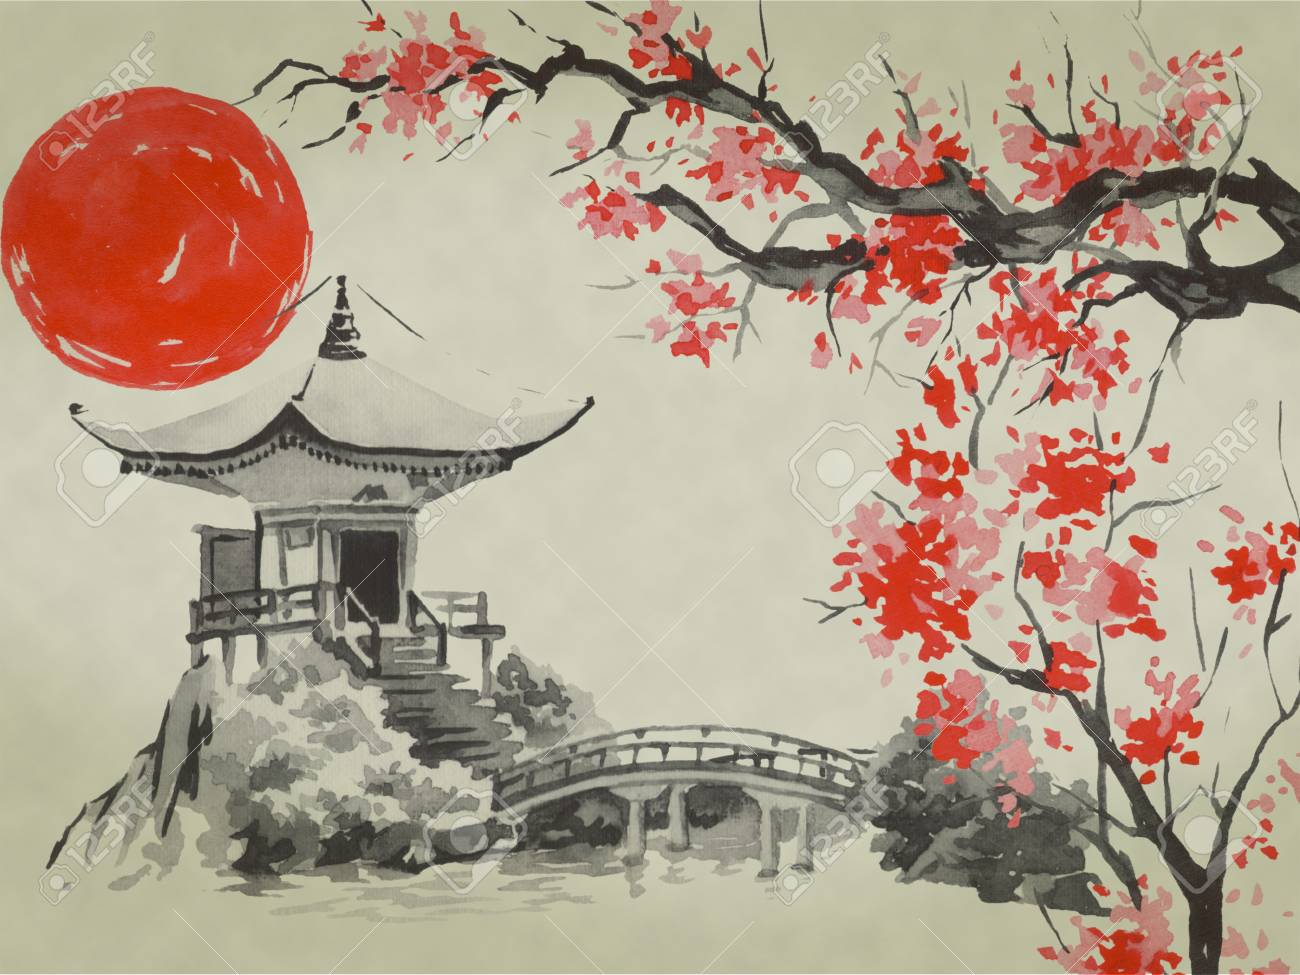 Japan Traditional Sumi E Painting Watercolor And Ink Illustration Stock Photo Picture And Royalty Free Image Image 116756867